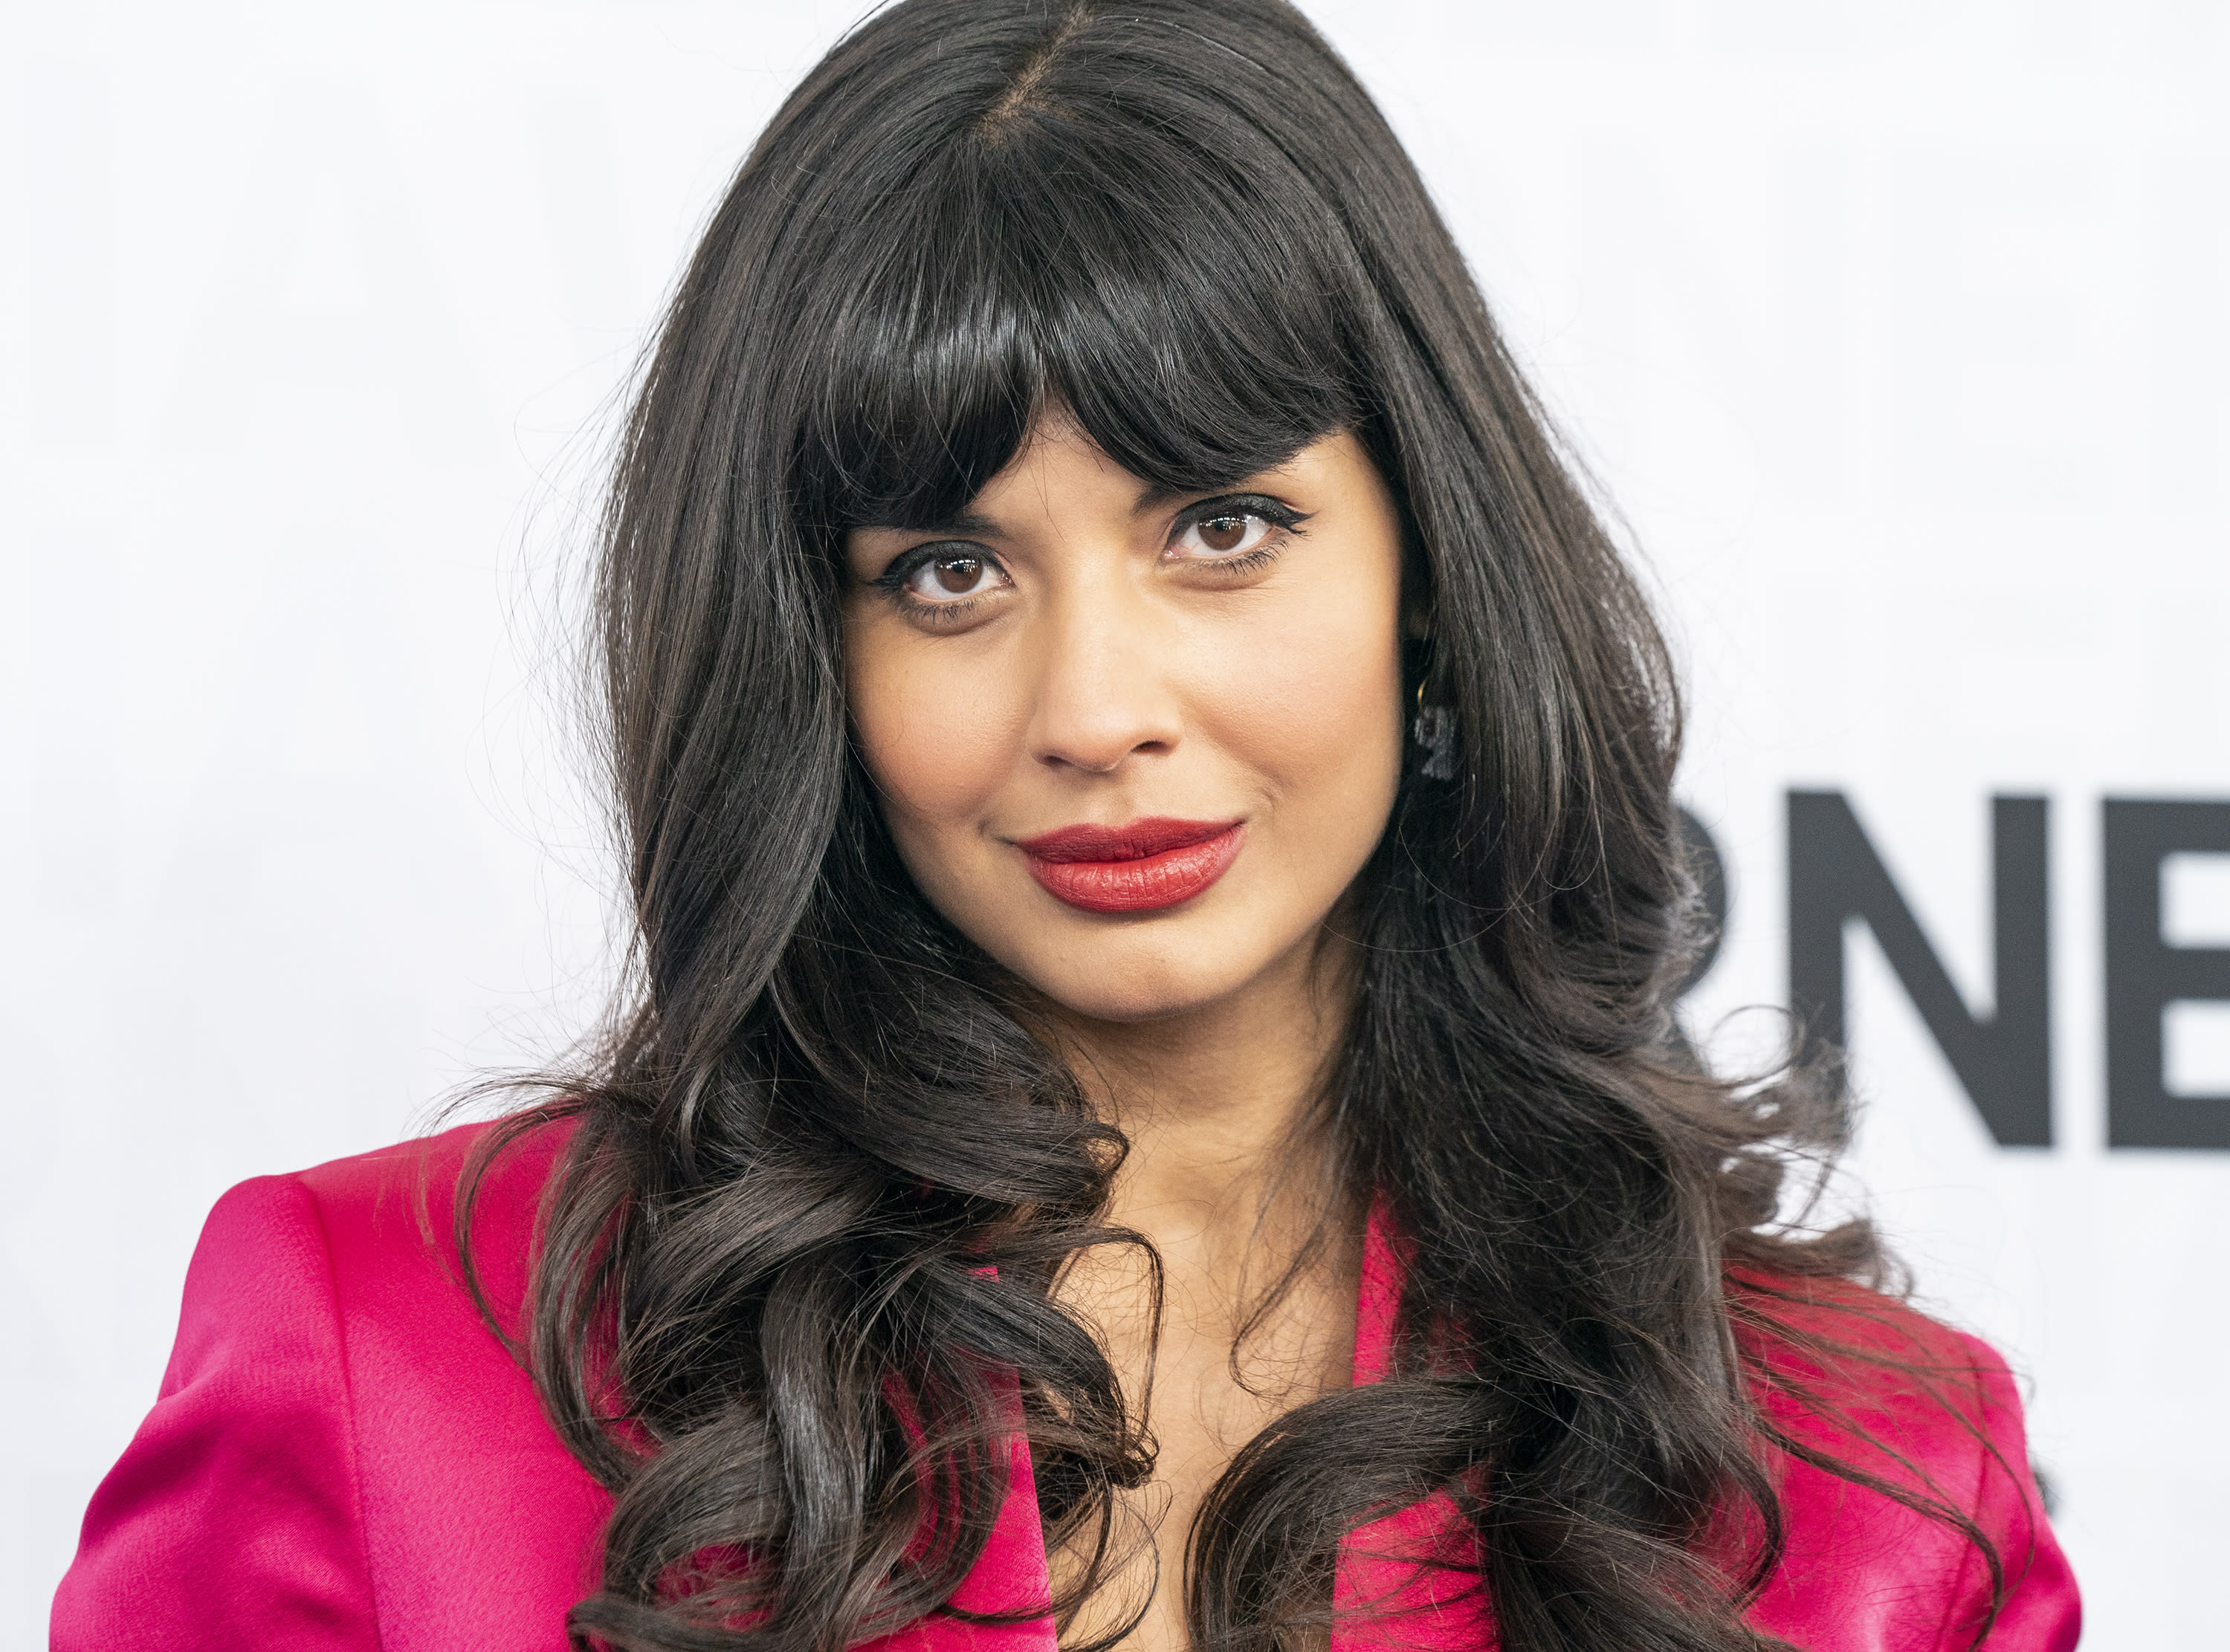 Jameela Jamil criticizes Kim Kardashian's new body makeup line